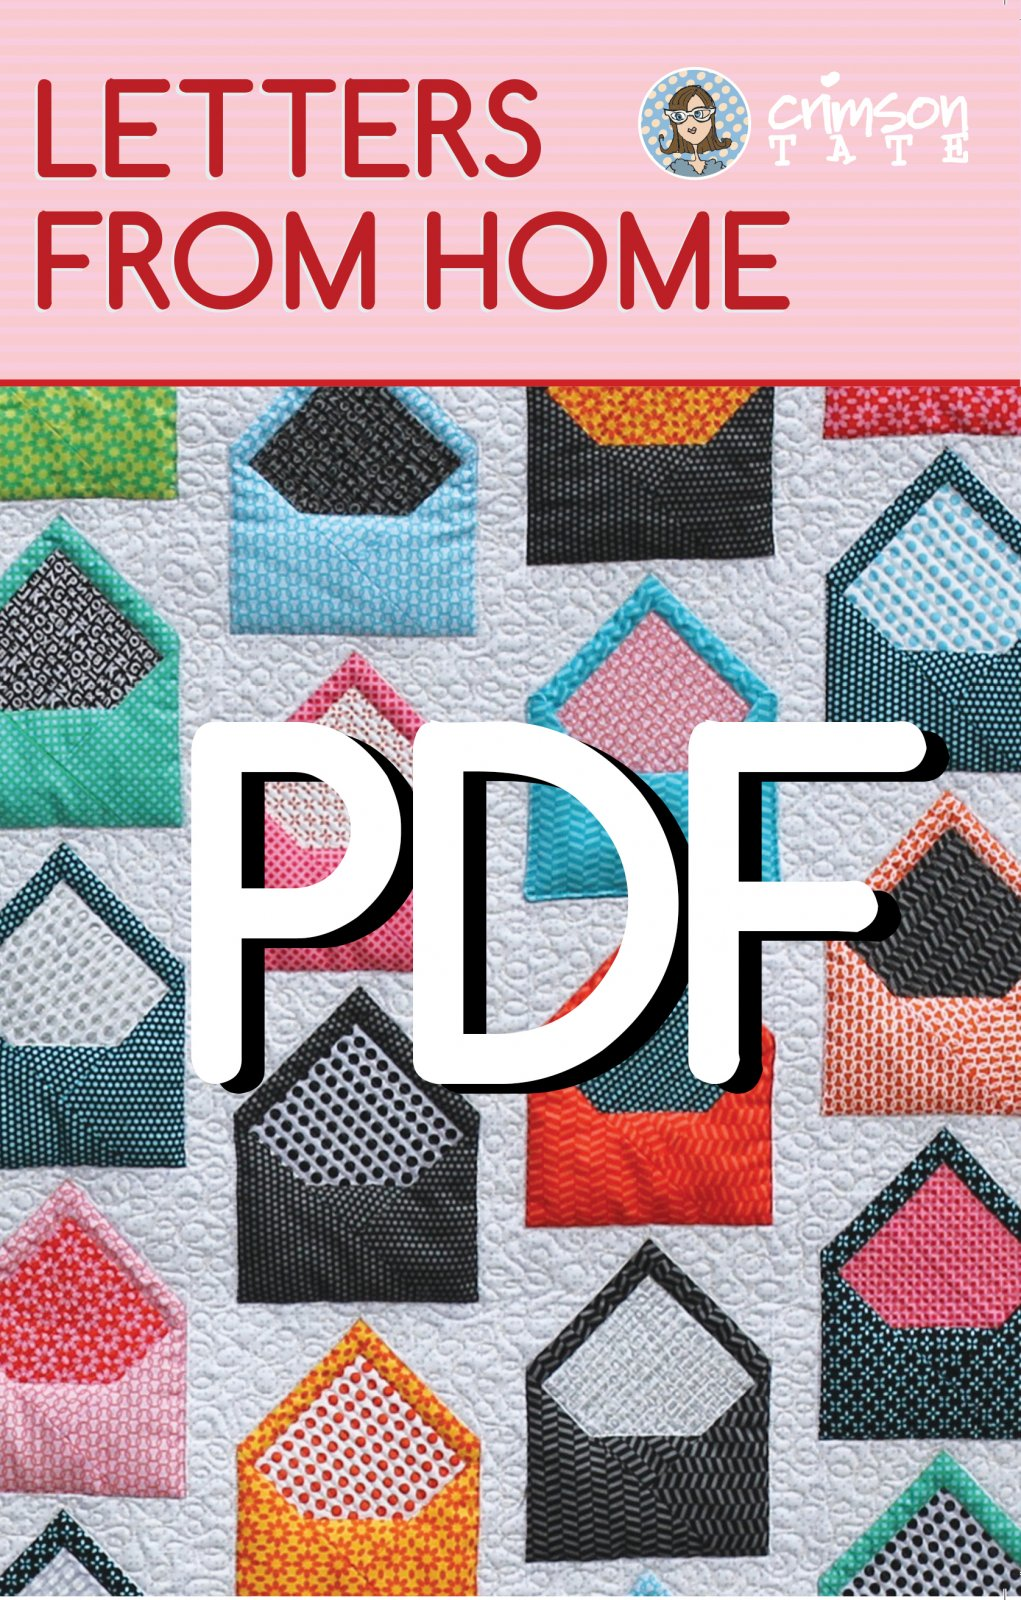 Letters from Home Quilt Pattern (PDF Download)